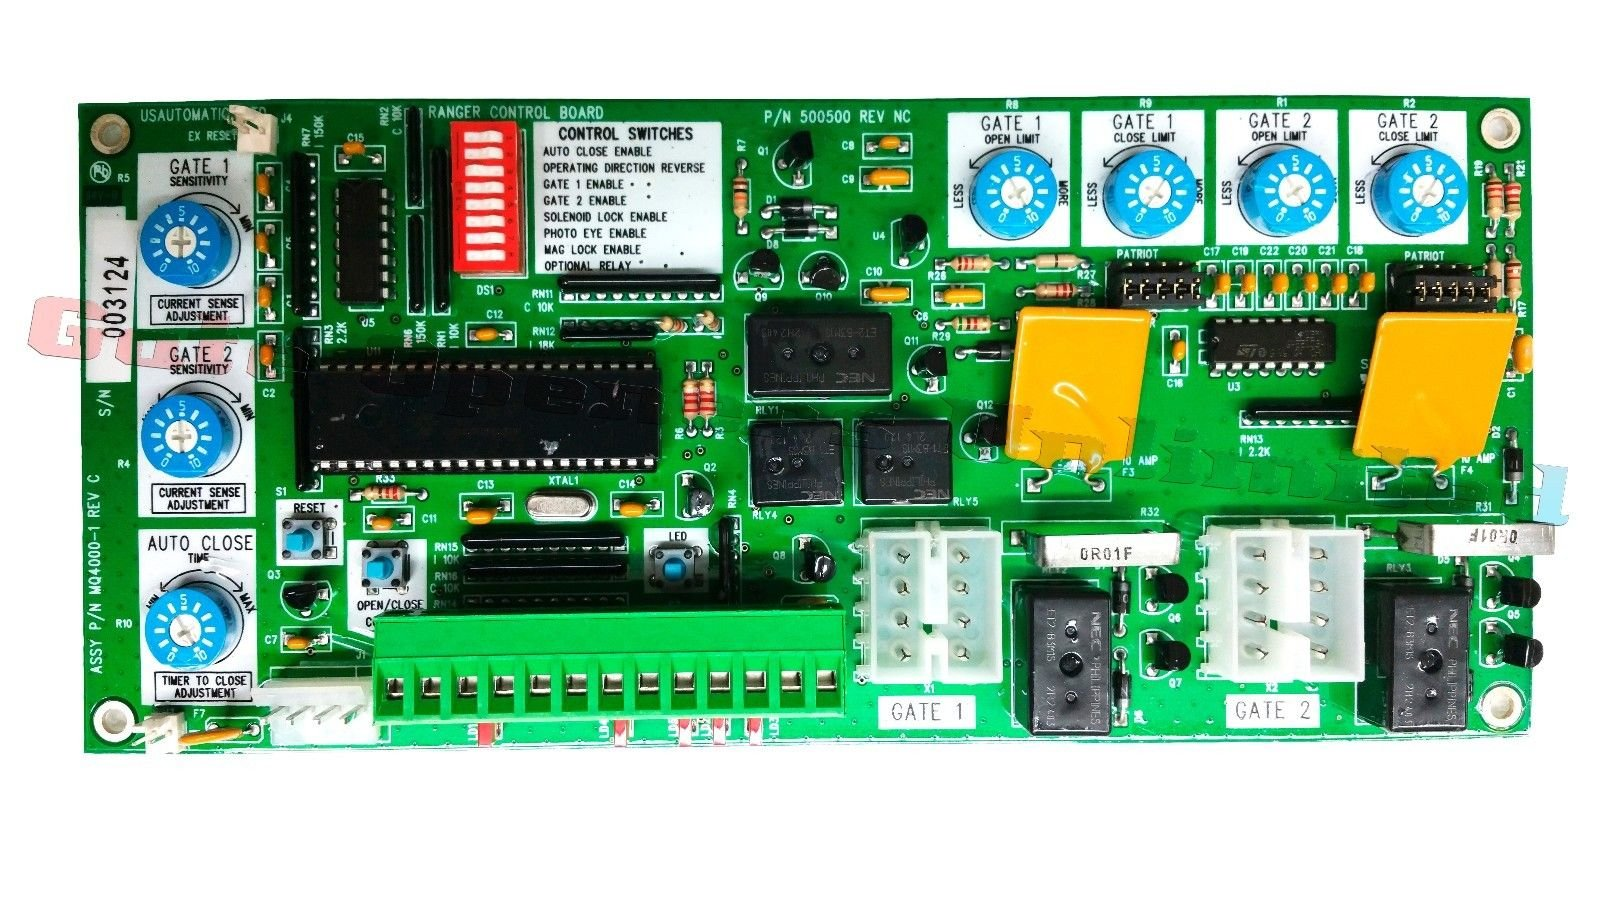 Sentry 300 Control Board, Replacement Circuit Board for Sentry Gate Openers